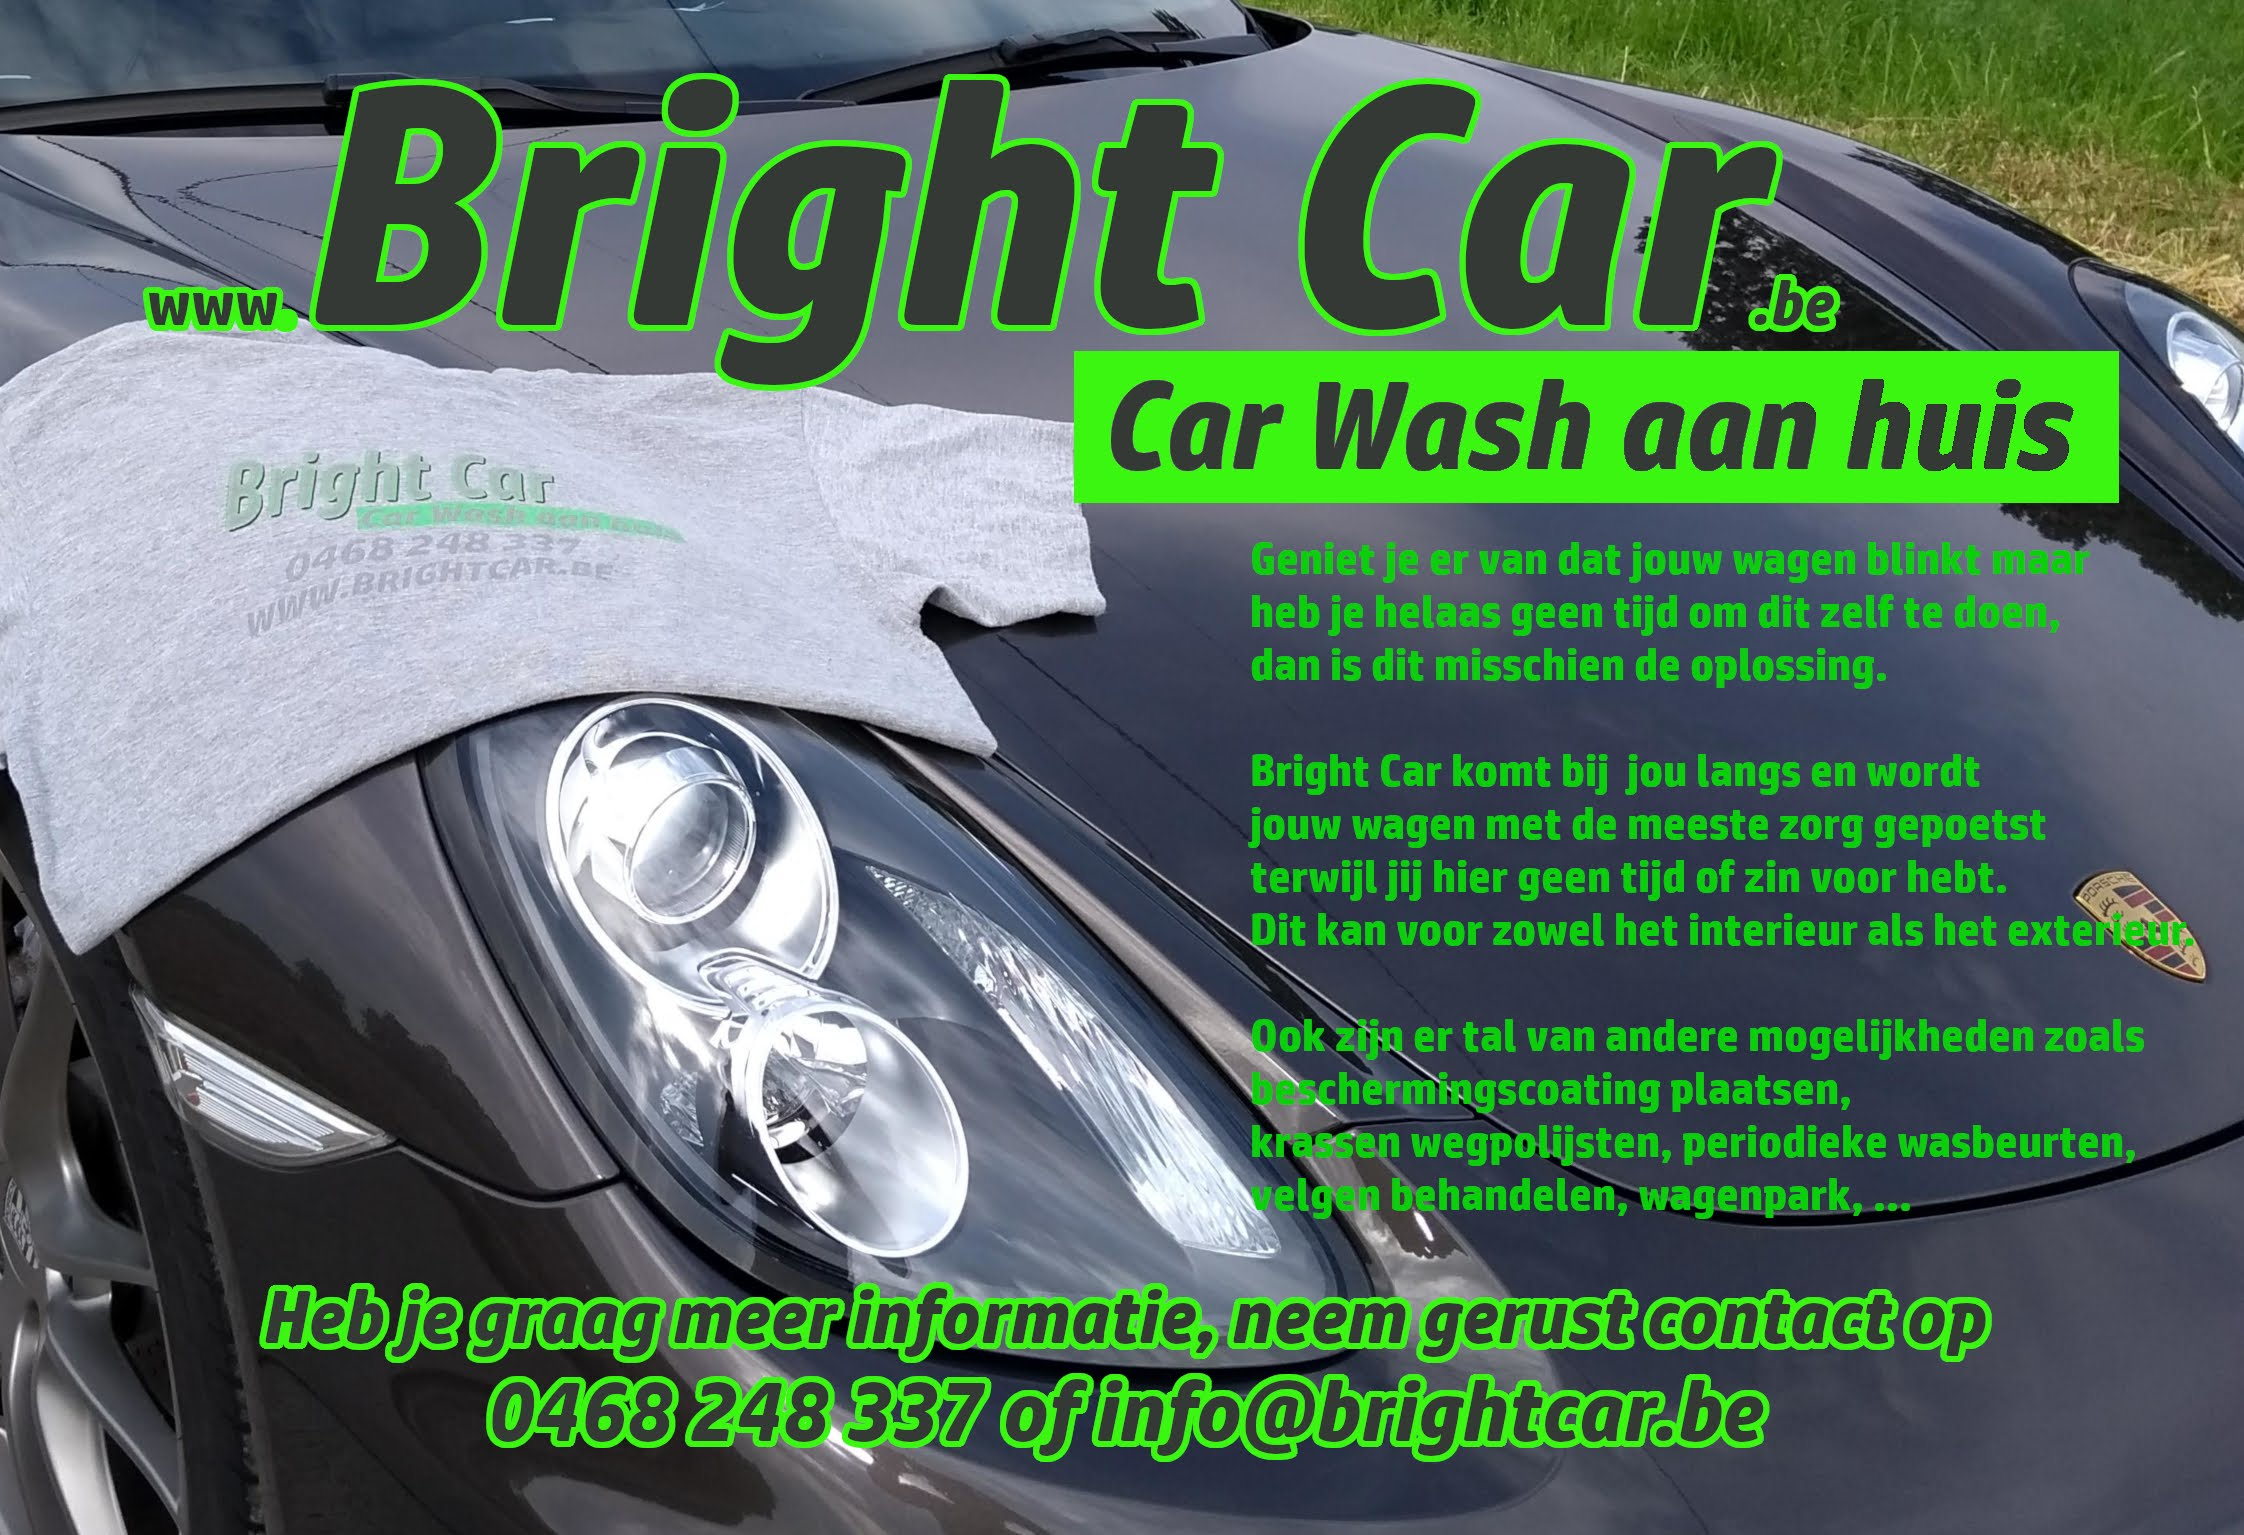 Bright Car flyer